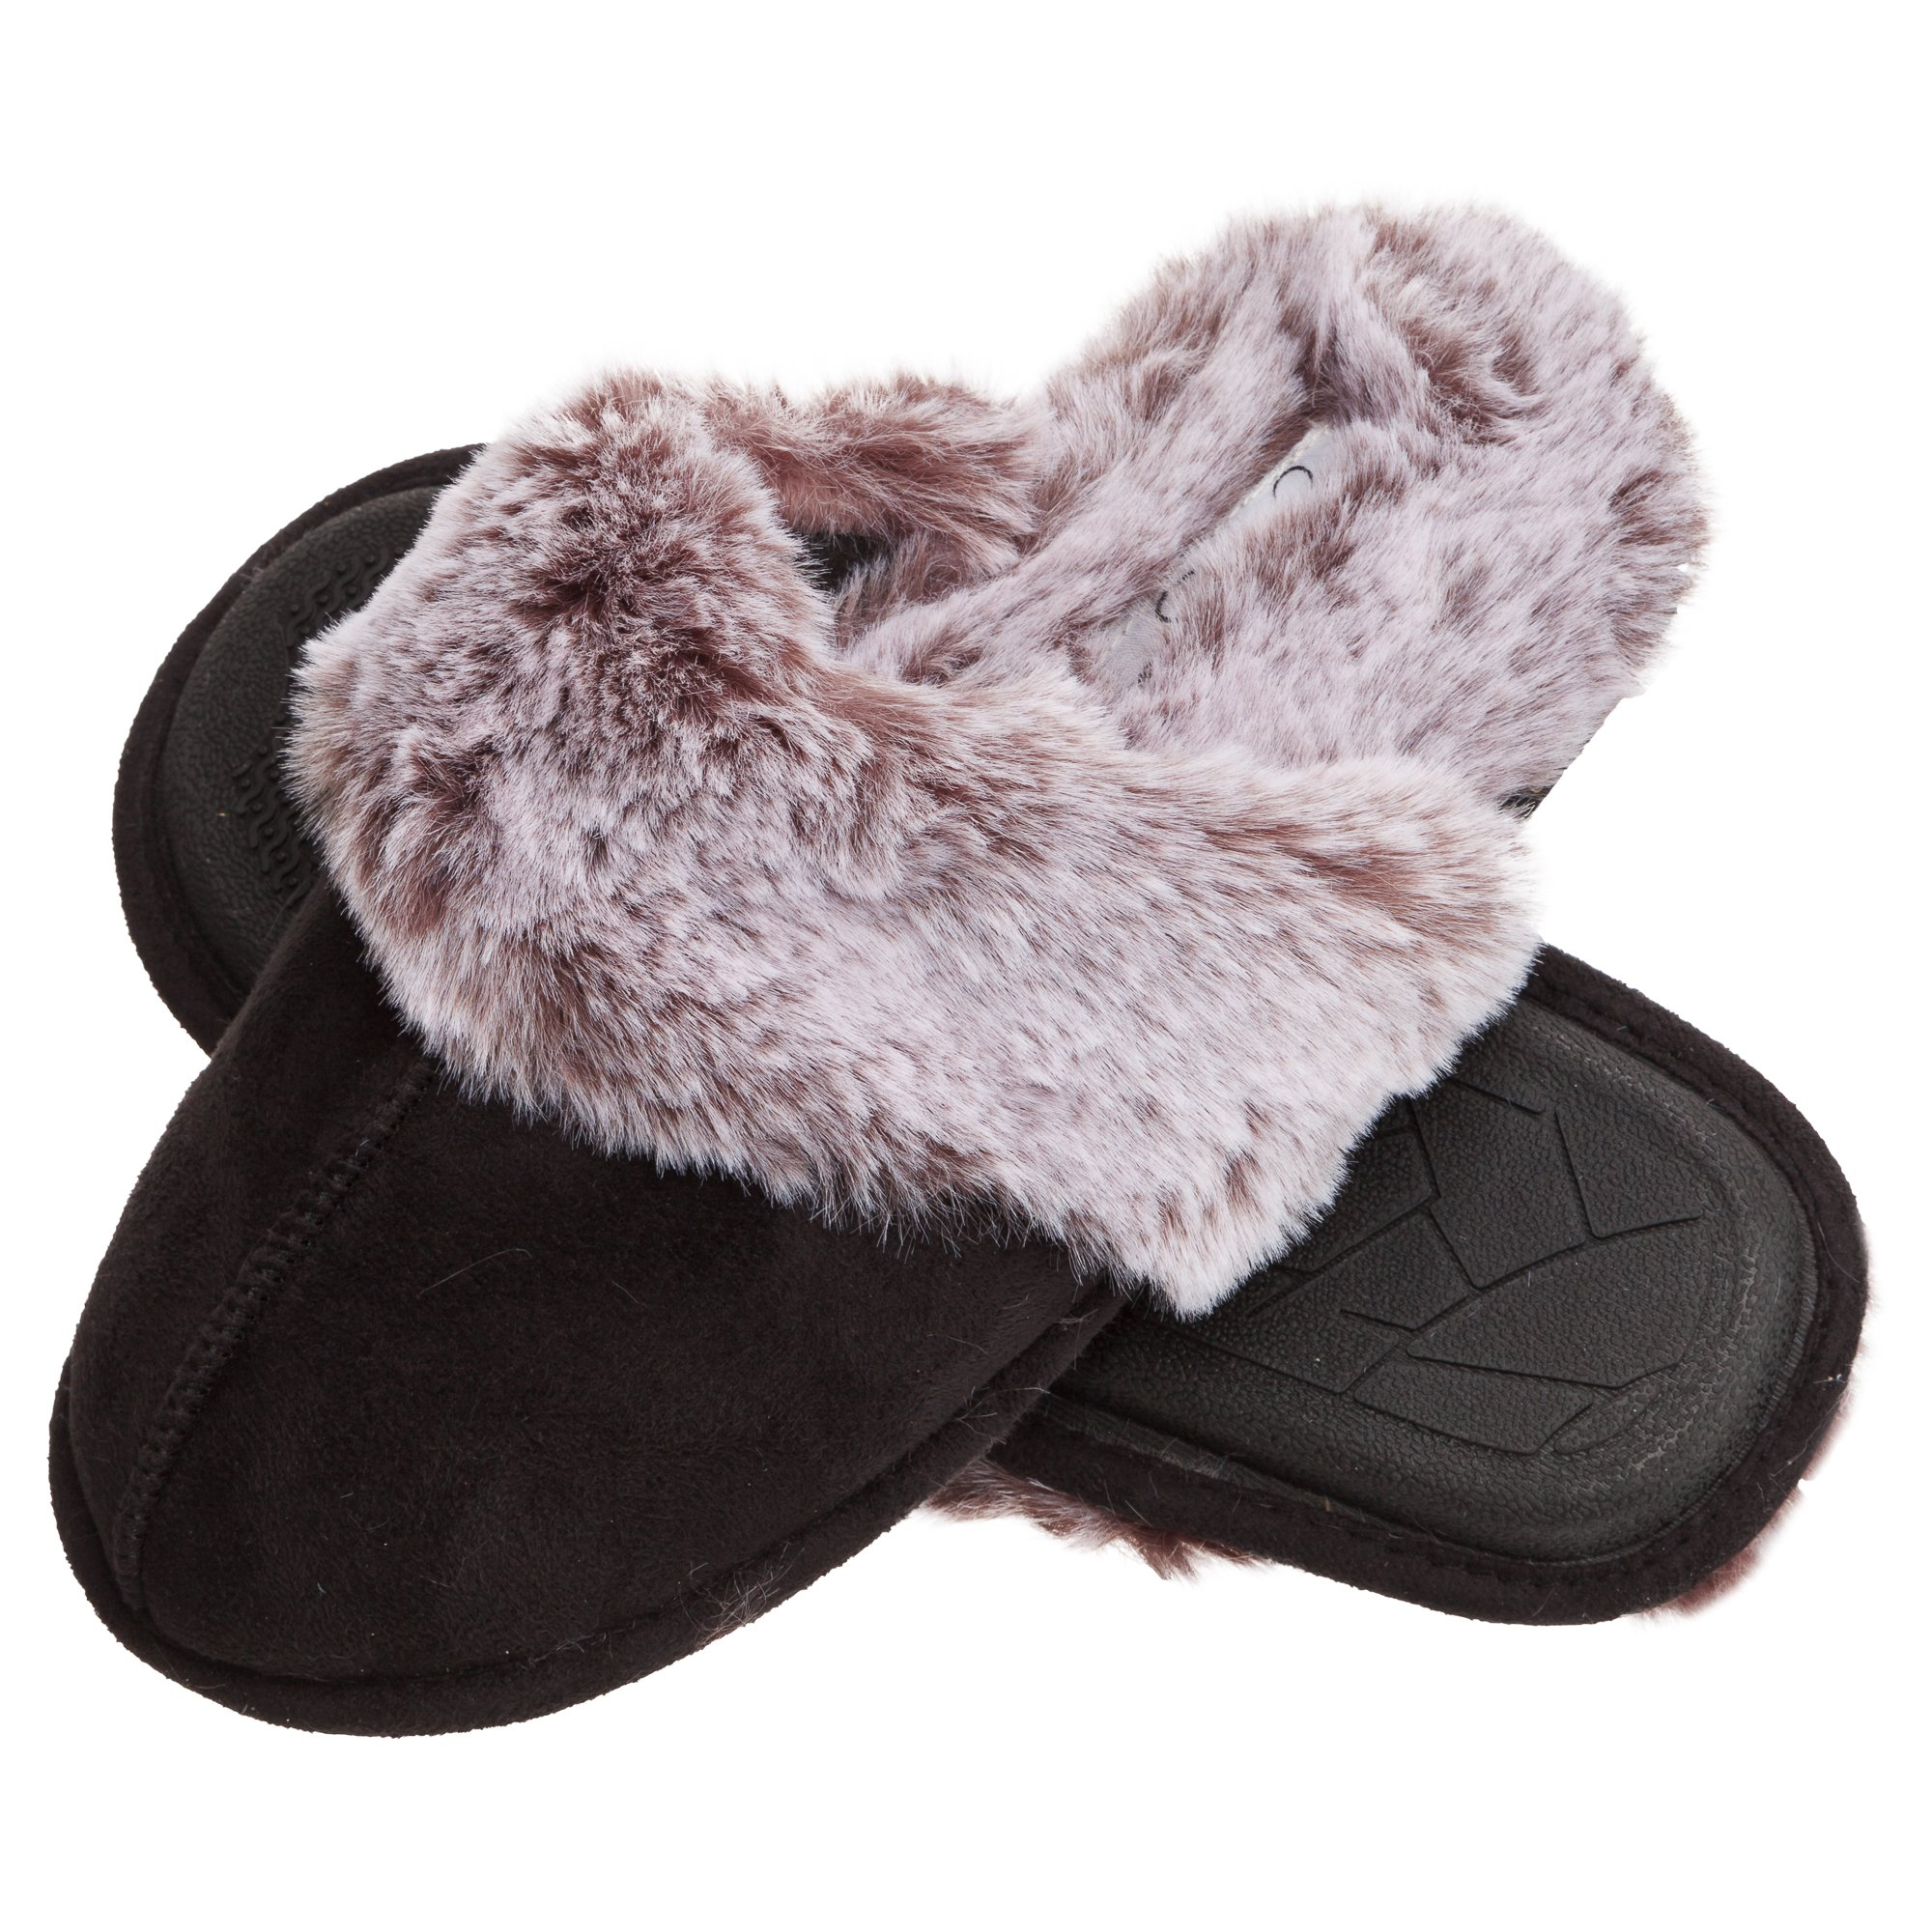 Jessica Simpson Faux Fur Slip On Womens House Slipper with Memory Foam (Size Small, Black)